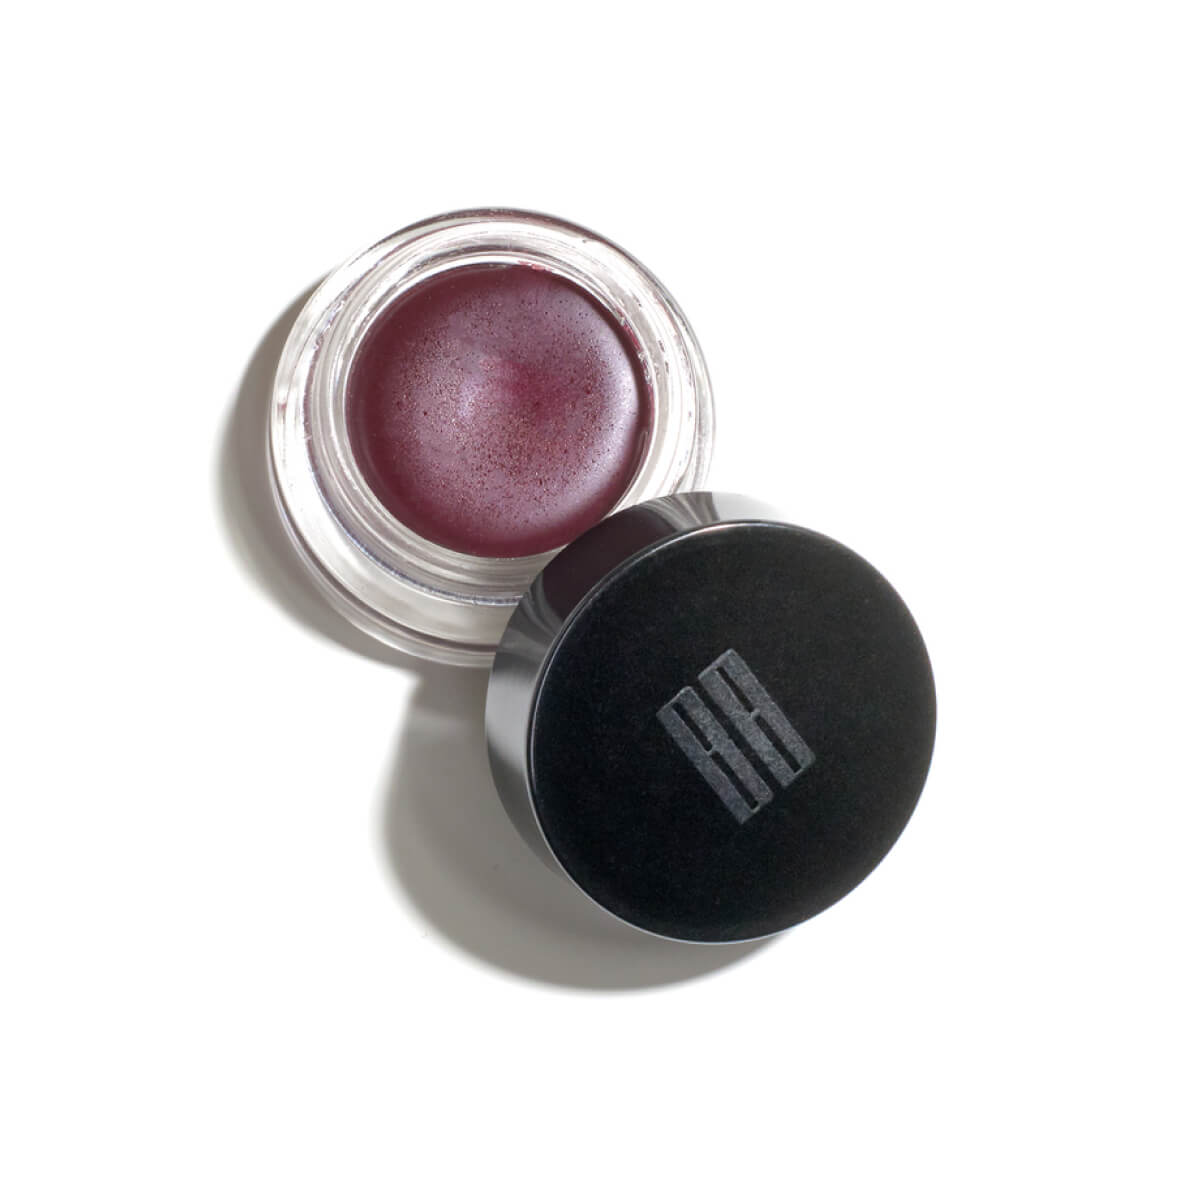 Balmyard Beauty Baby Love Balm Lip + Cheek Tint in Black Roses